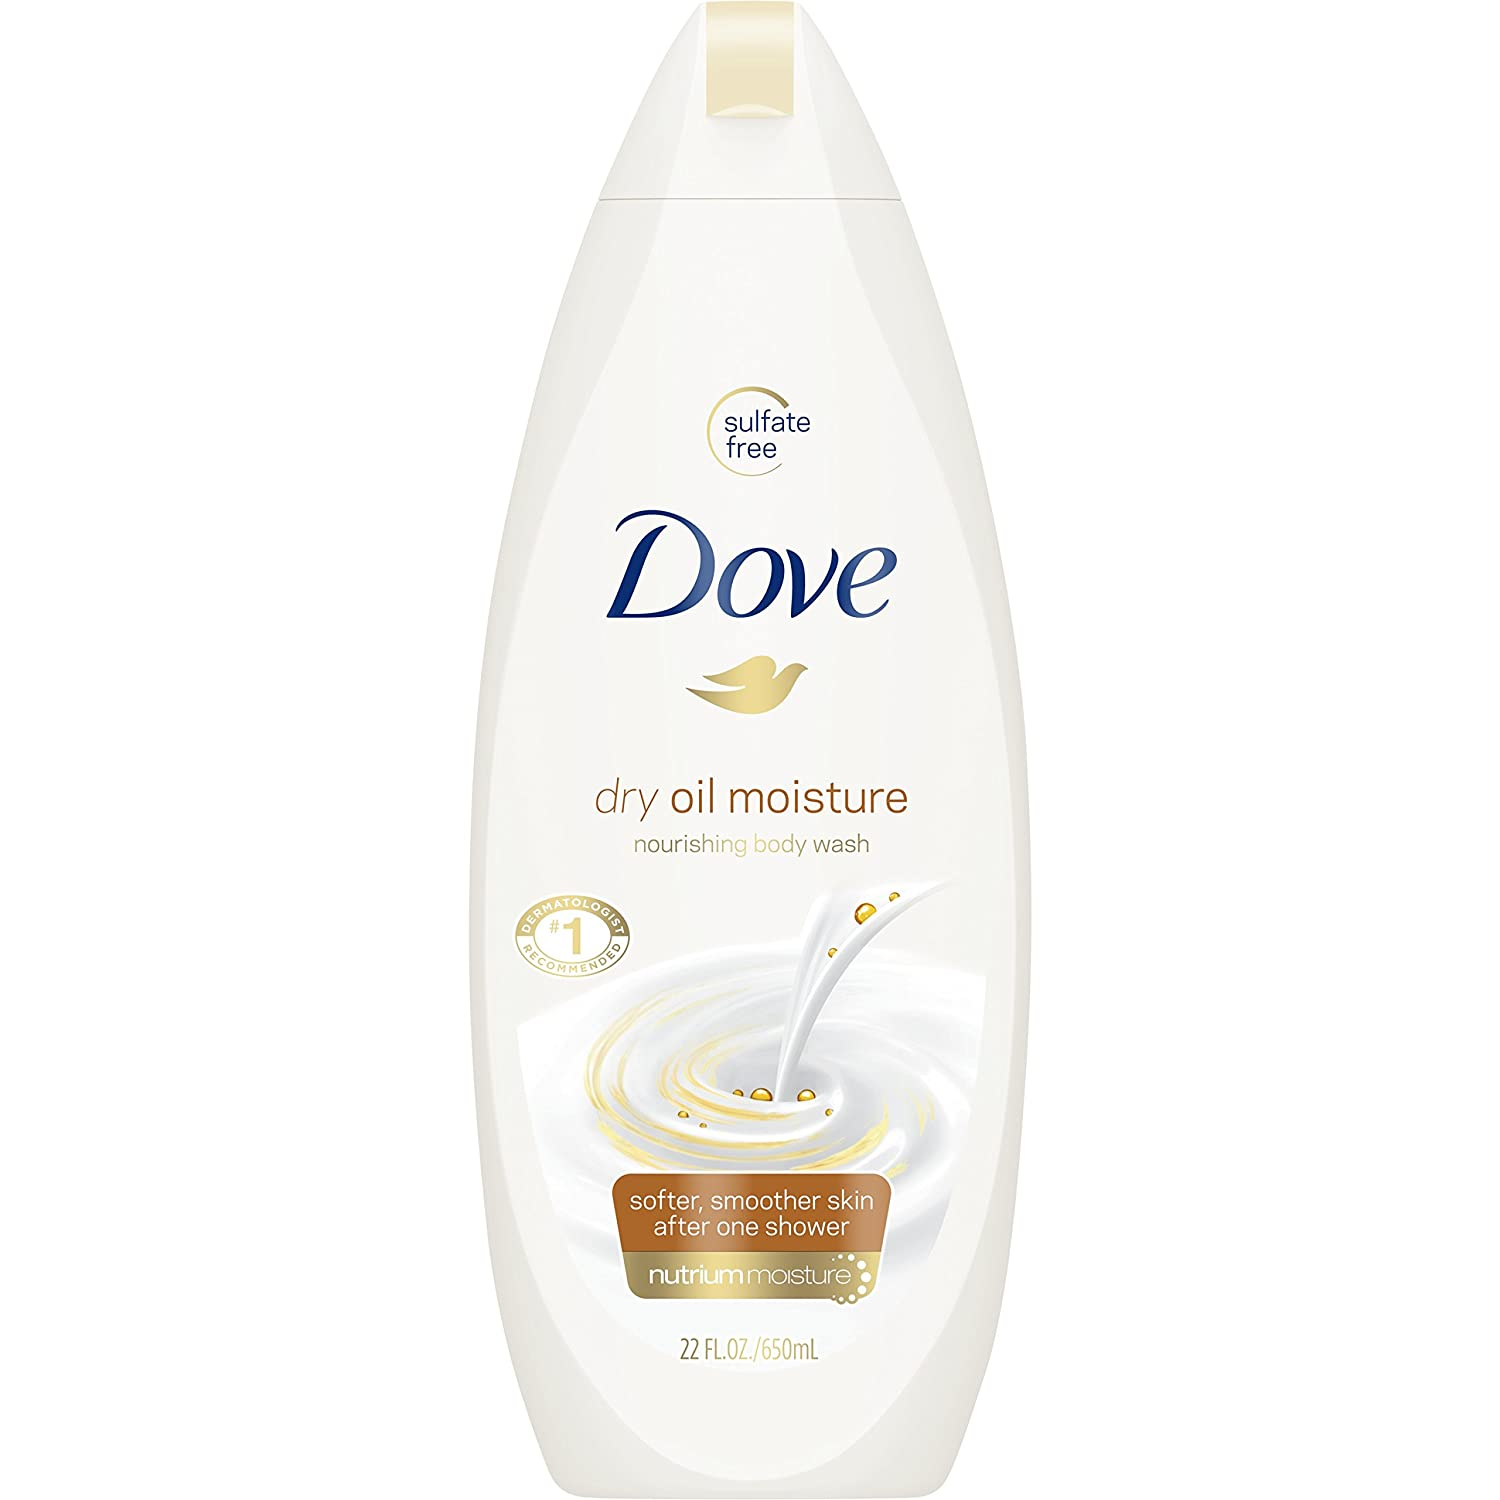 Dove Body Wash, Dry Oil Moisture Best Body Wash for Women